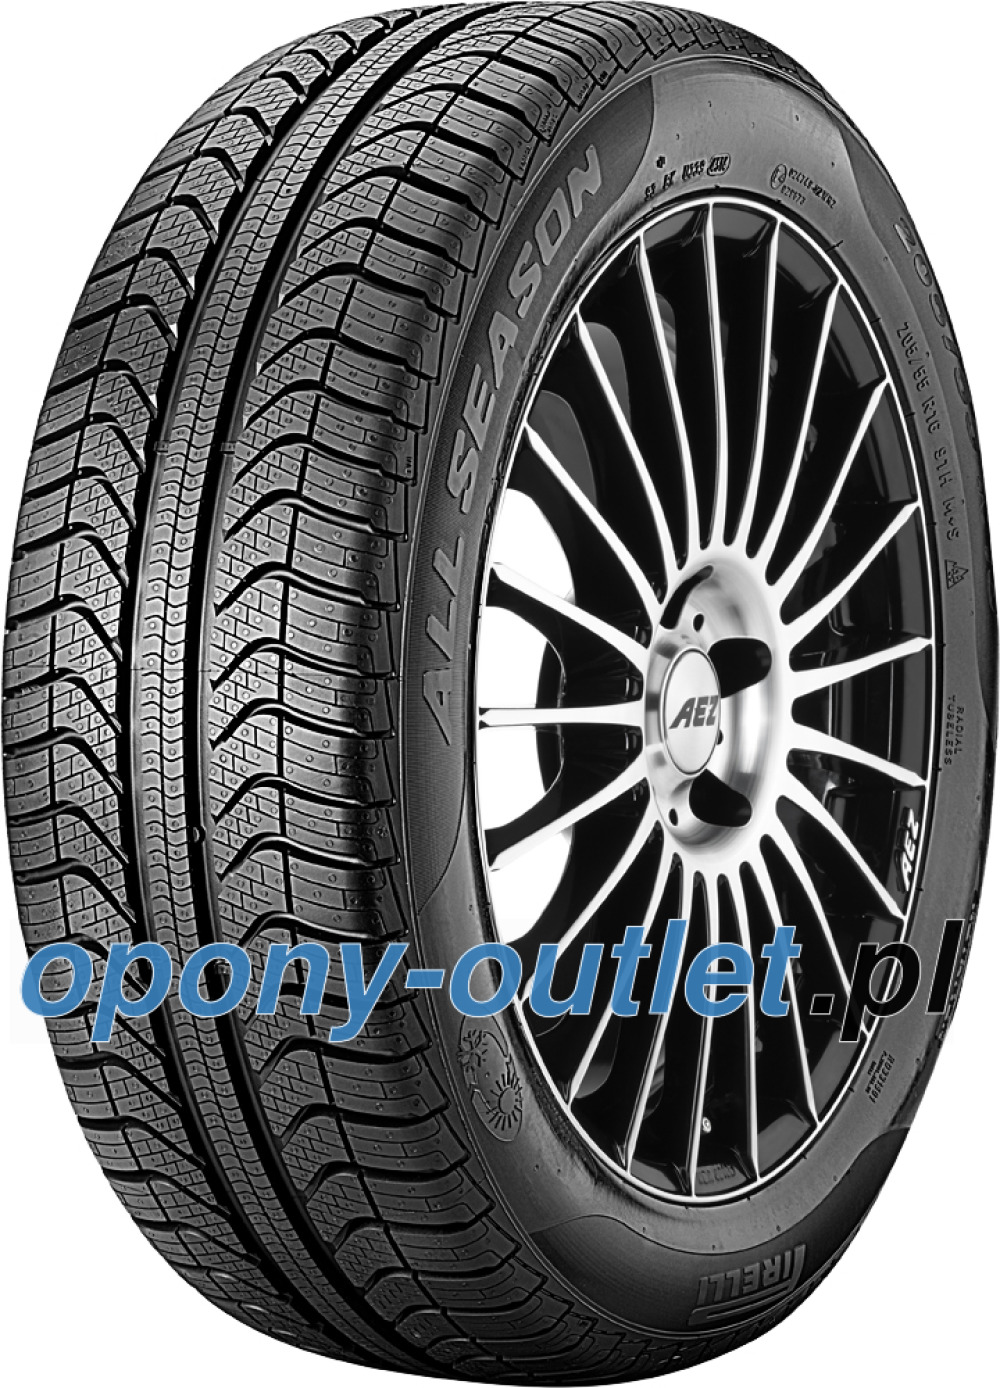 Pirelli Cinturato All Season ( 225/50 R17 98W XL , Seal Inside )